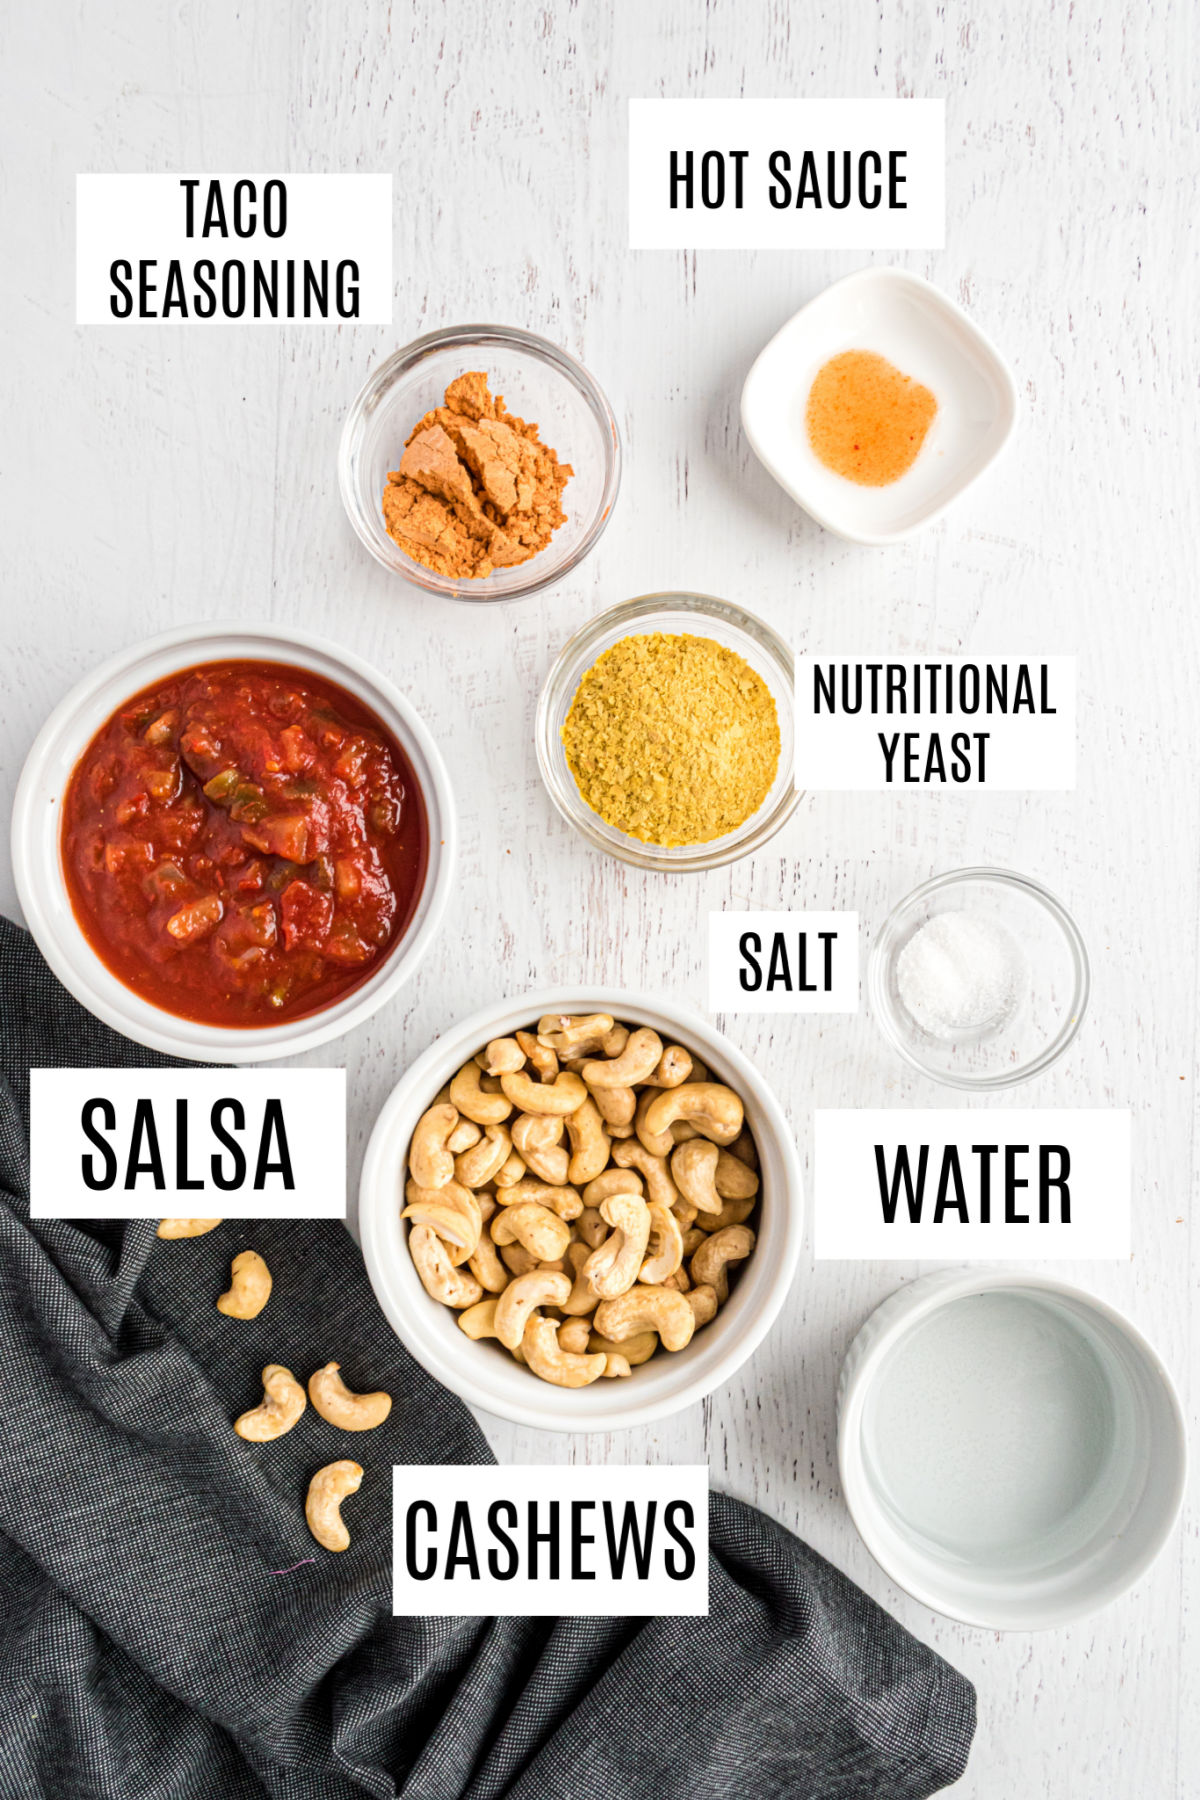 Ingredients needed to make no cheese cashew queso.